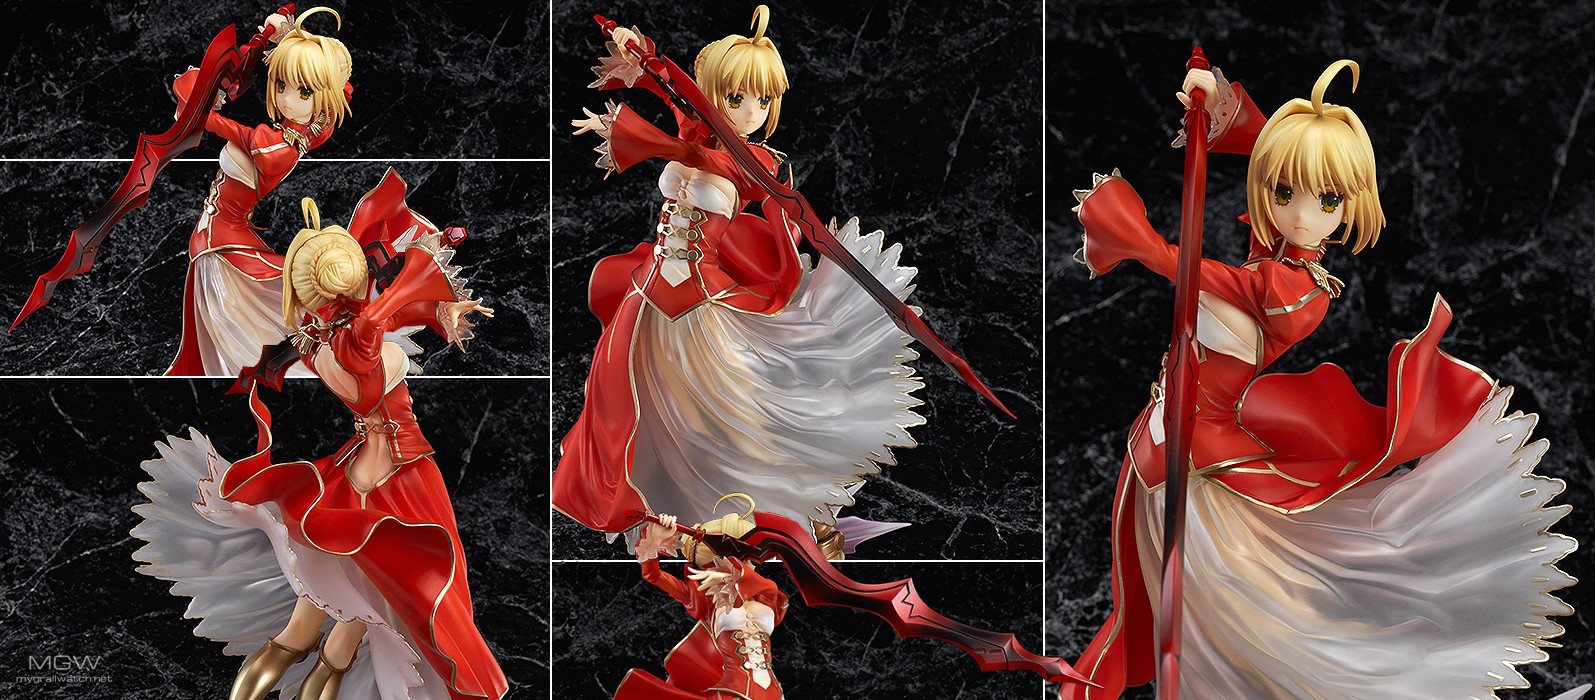 Saber Extra by Good Smile Company from Fate EXTRA